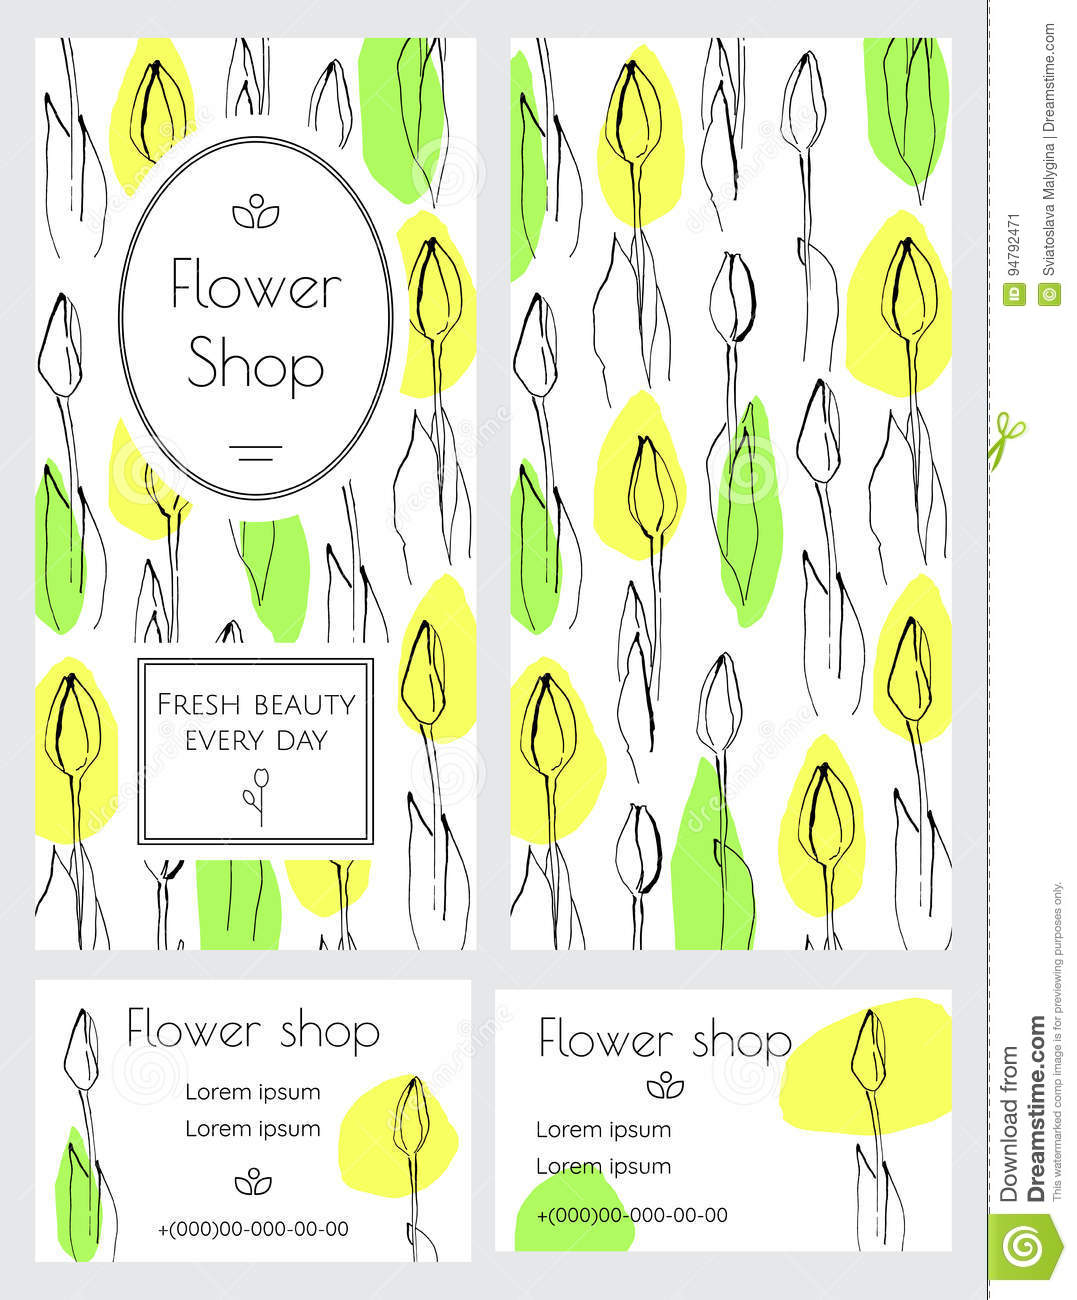 A set of brochures and business cards for a flower shop